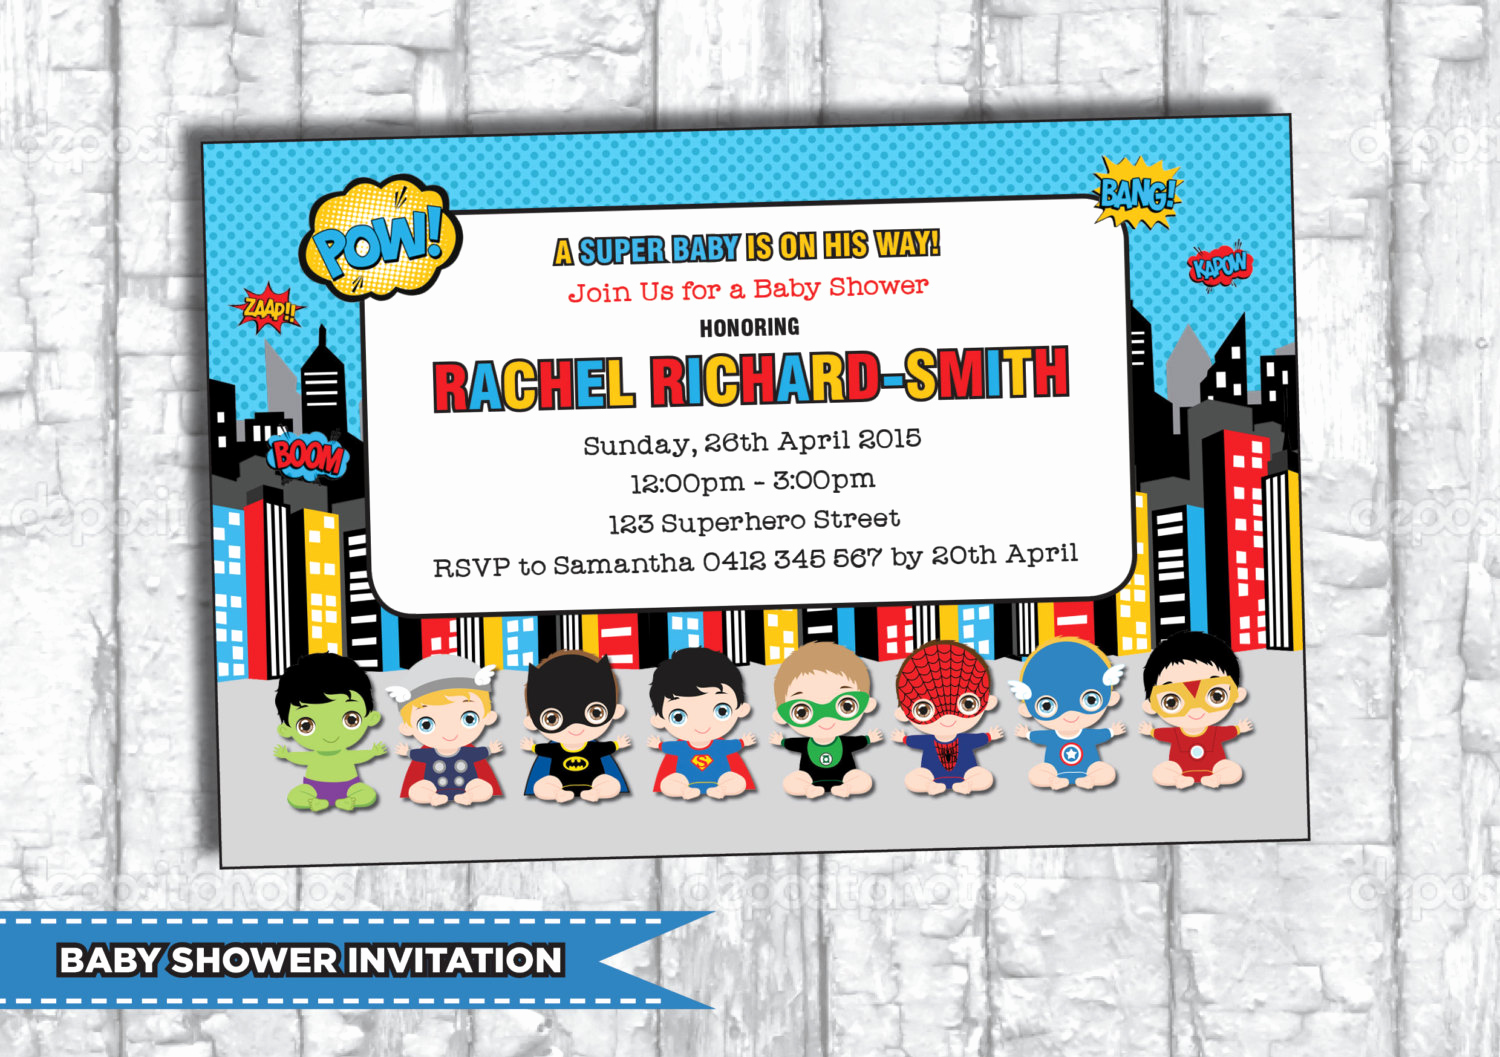 Superhero Baby Shower Invitation Templates Unique Superhero Baby Shower Invitation Personalized by